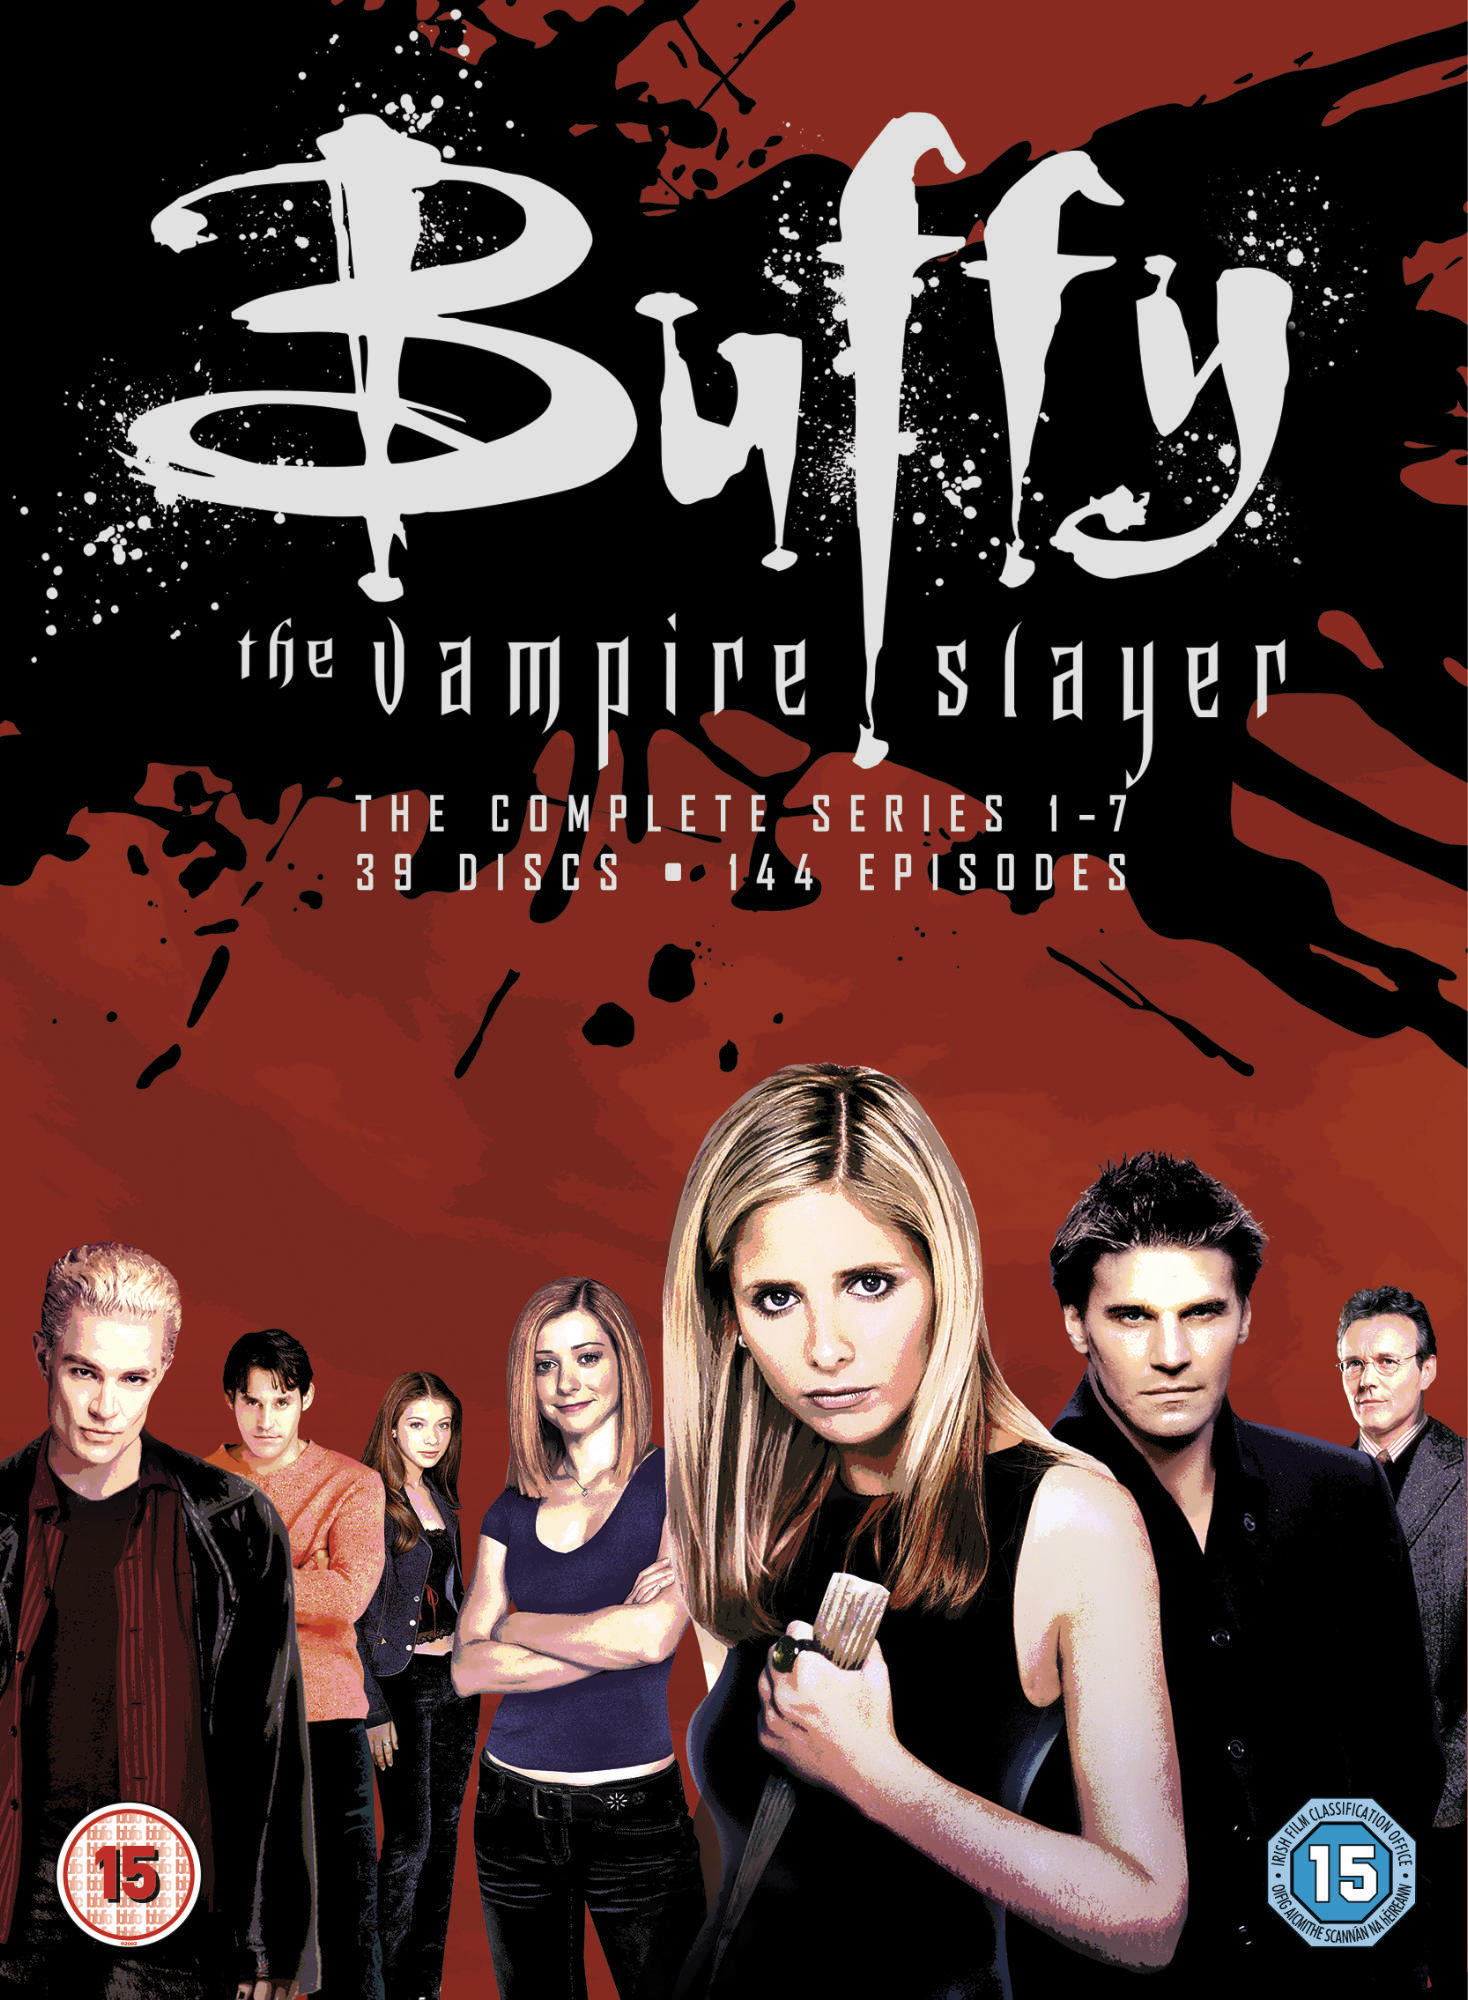 BUFFY THE VAMPIRE SLAYER THE COMPLETE SERIES 1-7 - DVD